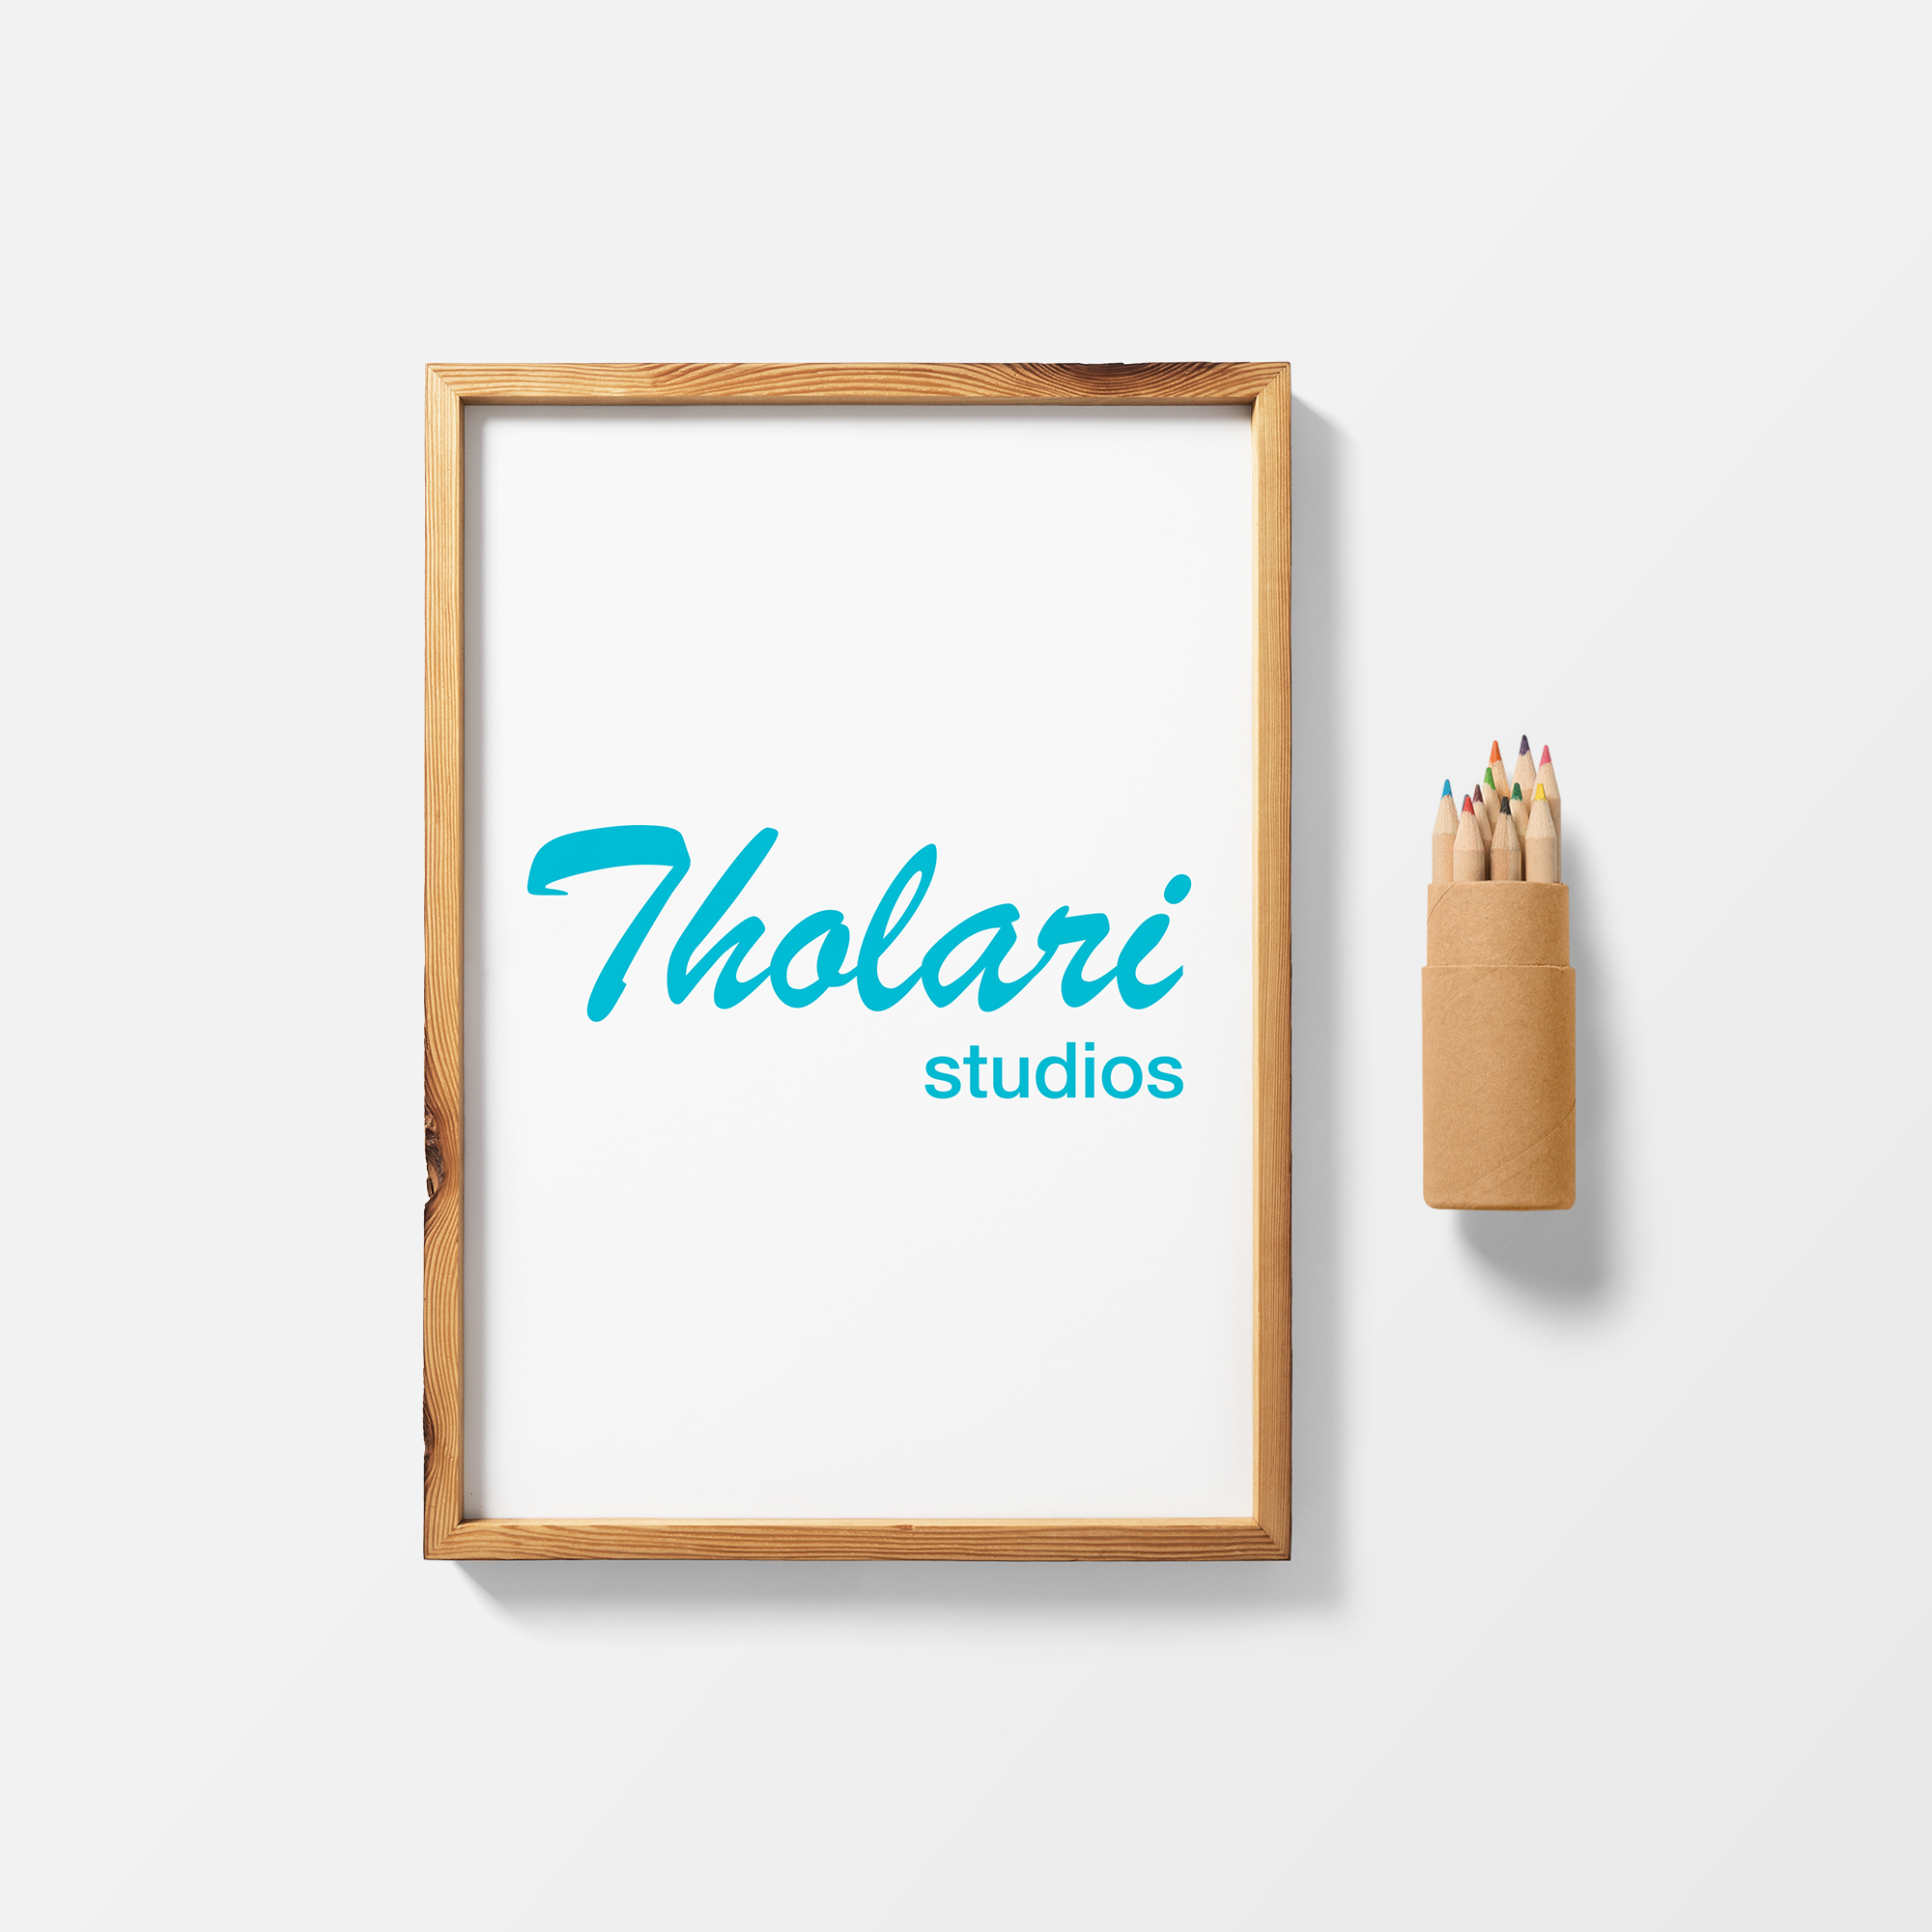 Tholari Studios logo surrounded by a wooden frame